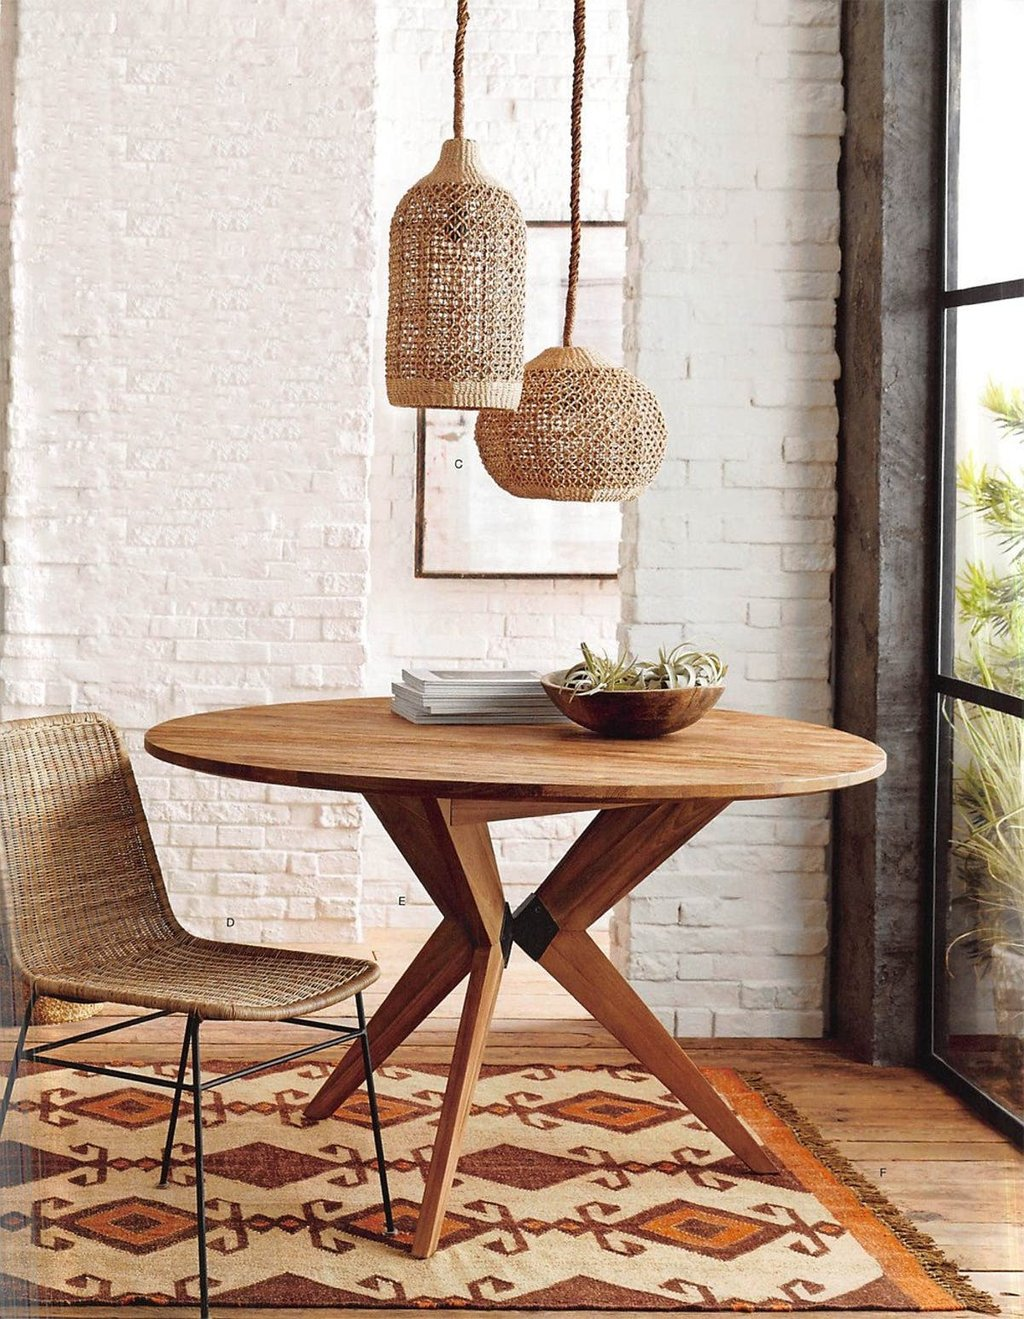 Roost Ingrid Rattan Dining Chair Set 2 Modish Store How To Repair Rattan Dining Chairs